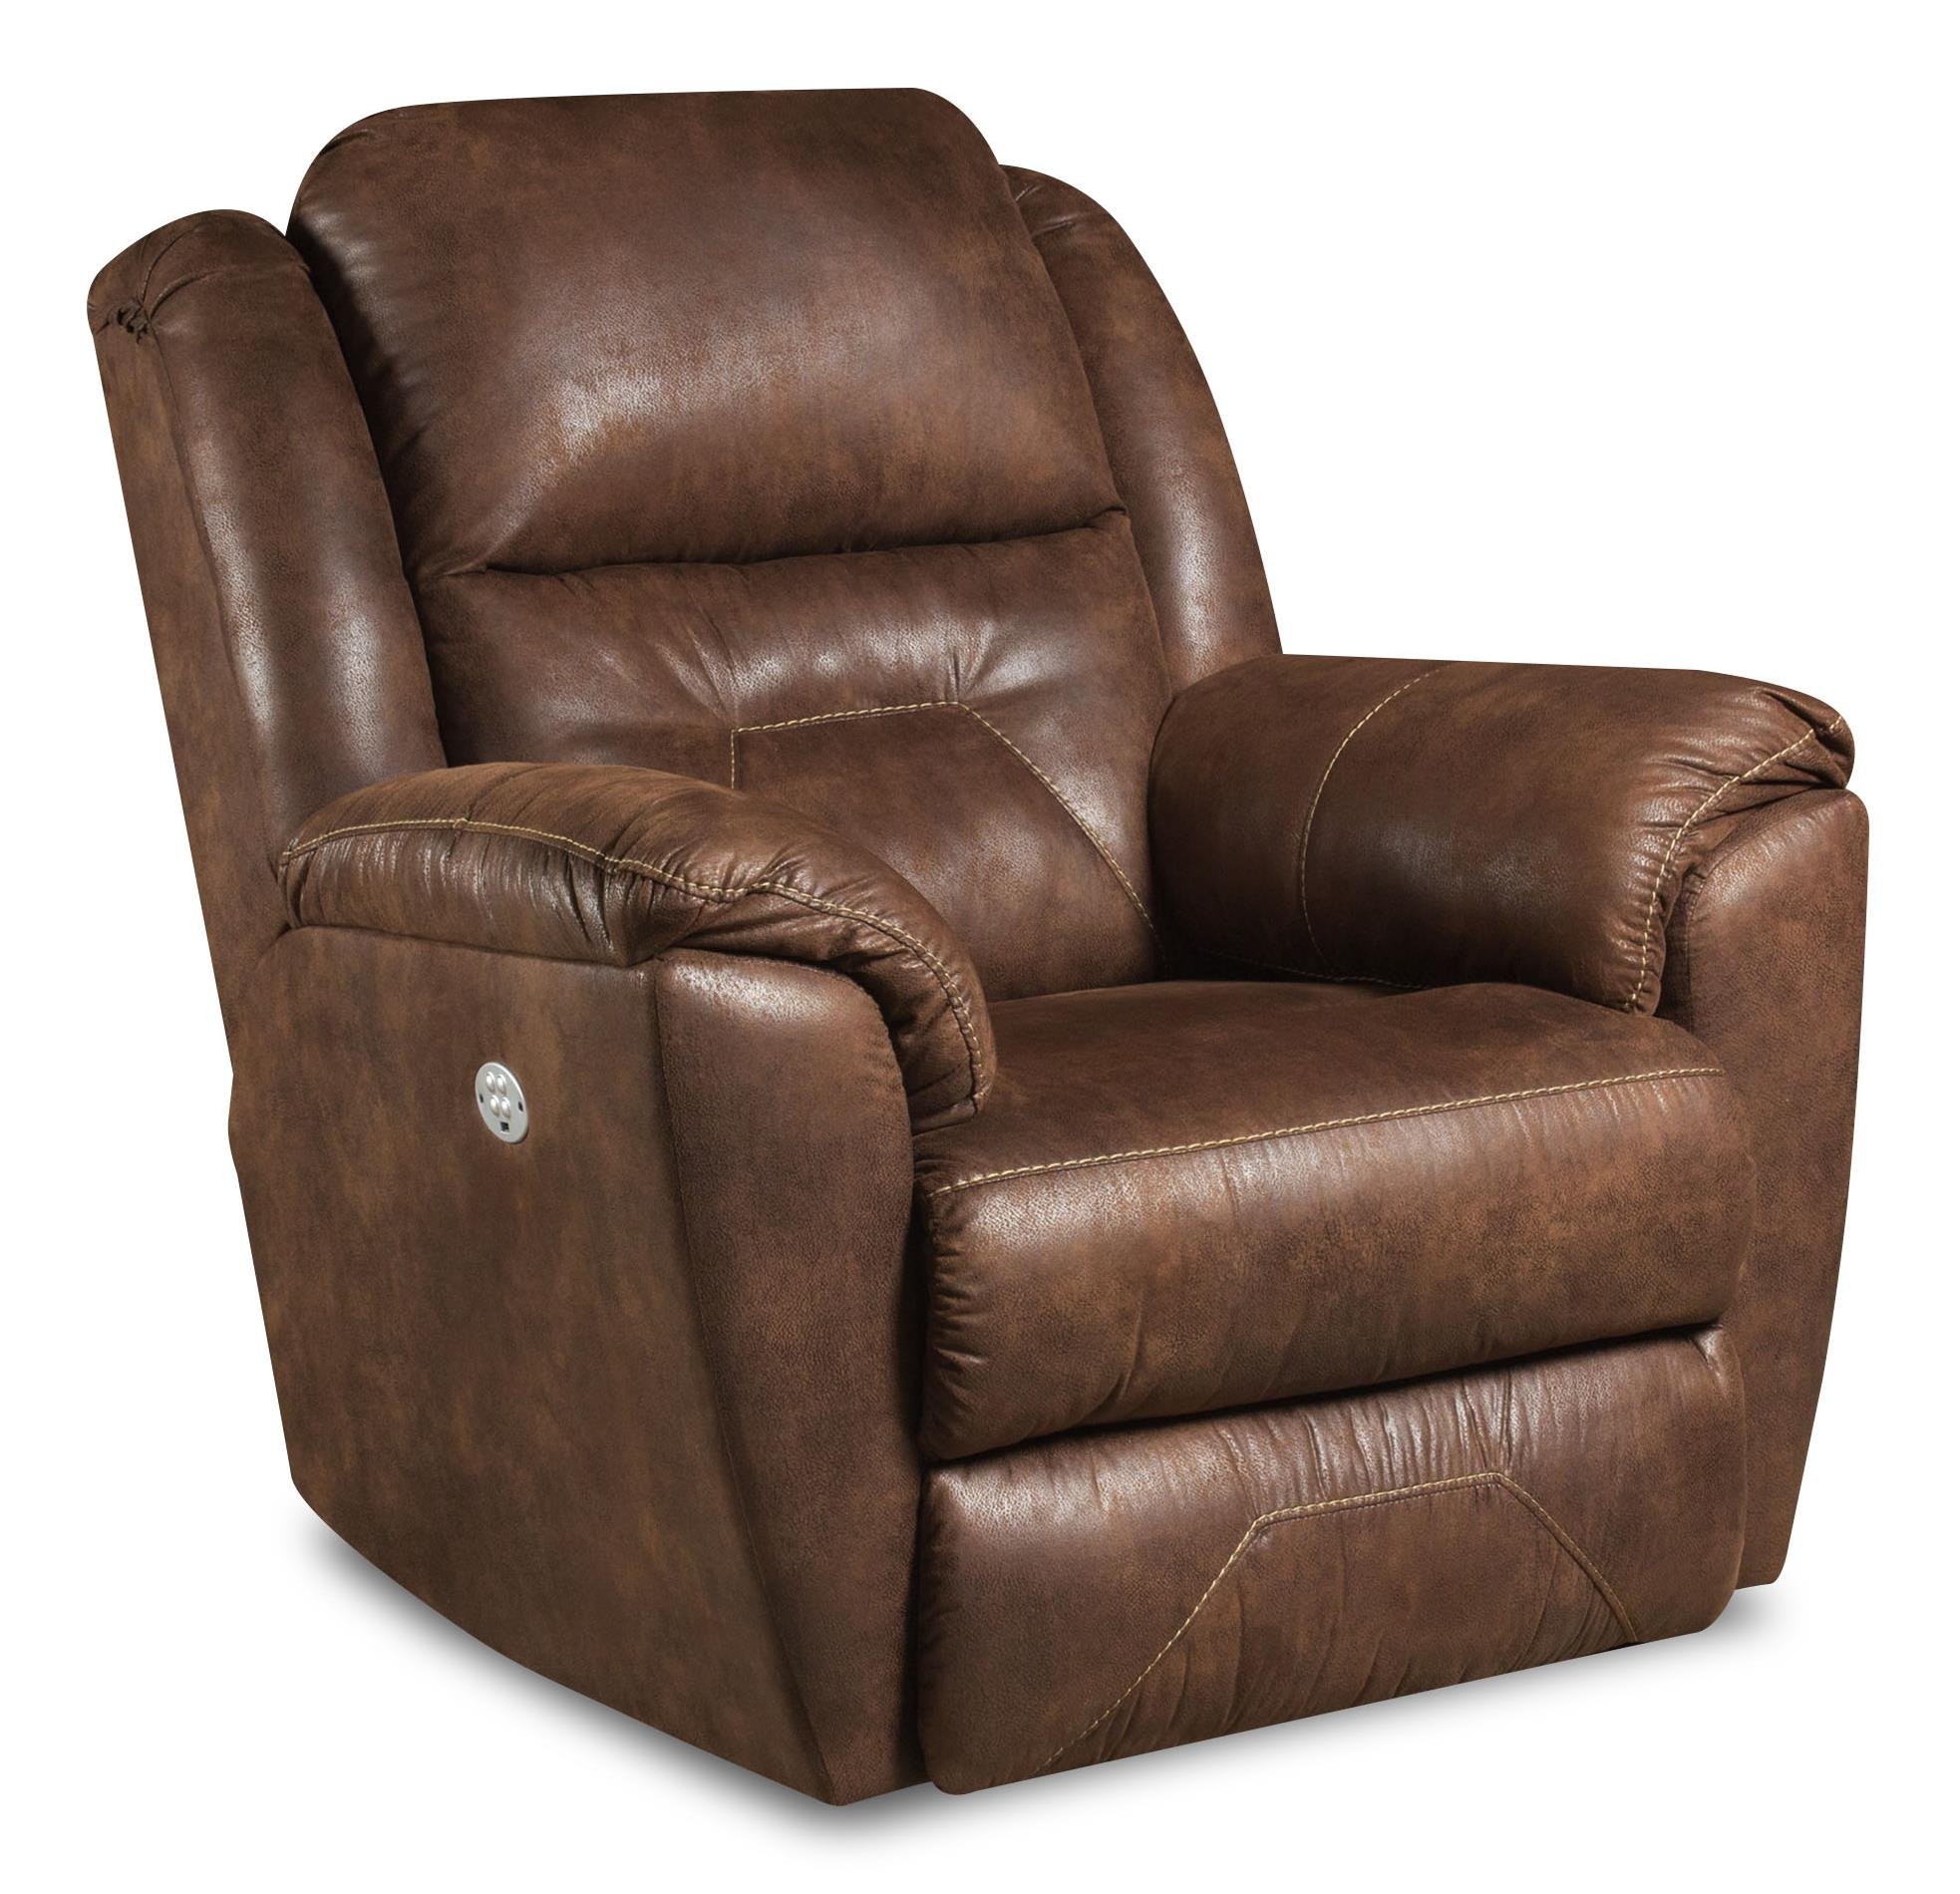 Southern Motion Recliners Pandora Rocker Recliner with Power Headrest - Item Number: 5751P-236-21